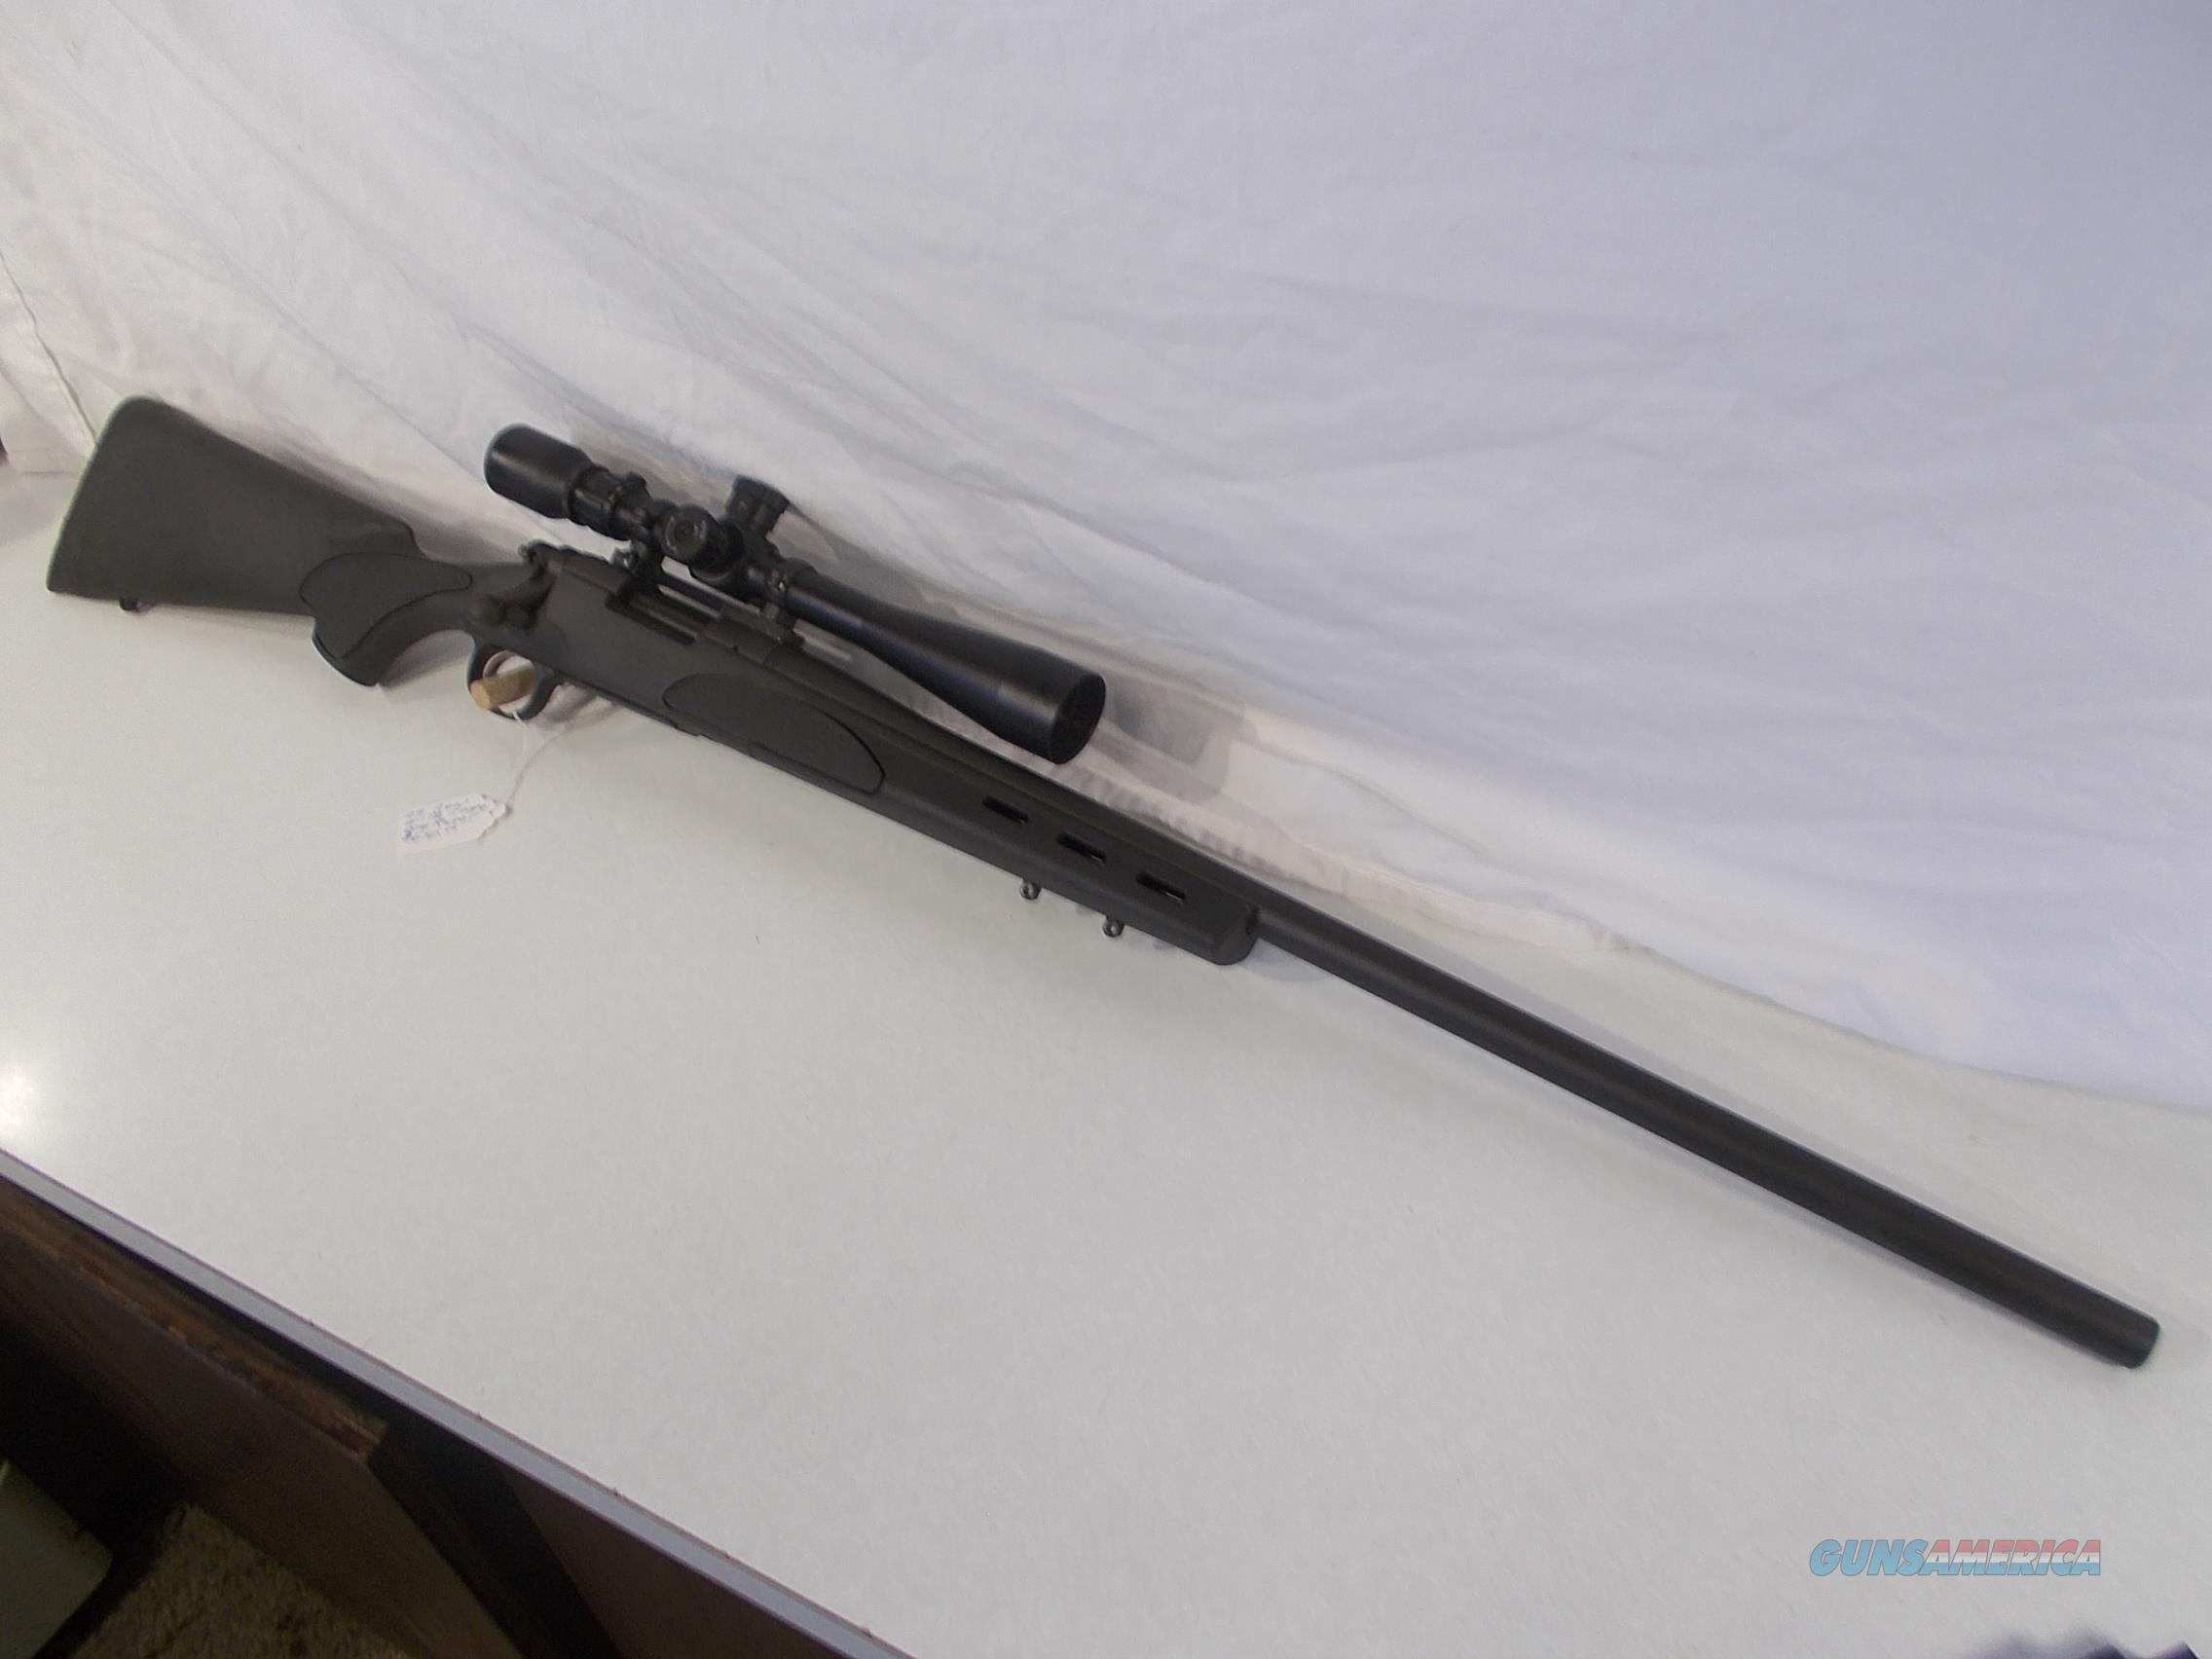 remington 700 sps varmit 204 heavy barrel  Guns > Rifles > Remington Rifles - Modern > Model 700 > Sporting